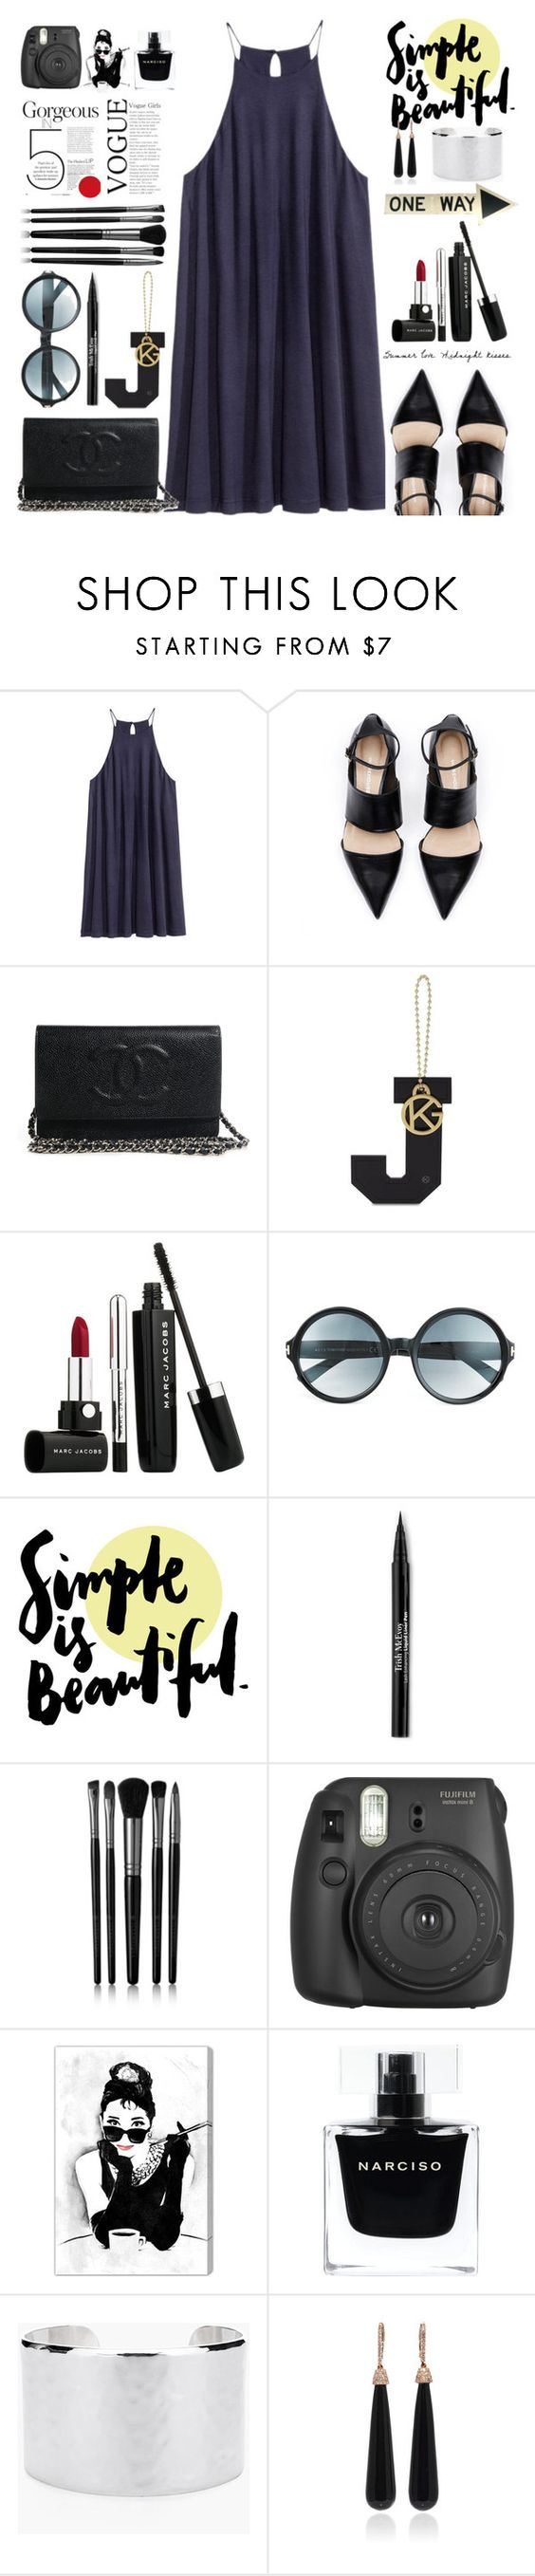 """""""Summer date"""" by jan31 ❤ liked on Polyvore featuring Kurt Geiger, Marc Jacobs, Tom Ford, Trish McEvoy, Illamasqua, Oliver Gal Artist Co., Narciso Rodriguez, Chico's and SUSAN FOSTER"""